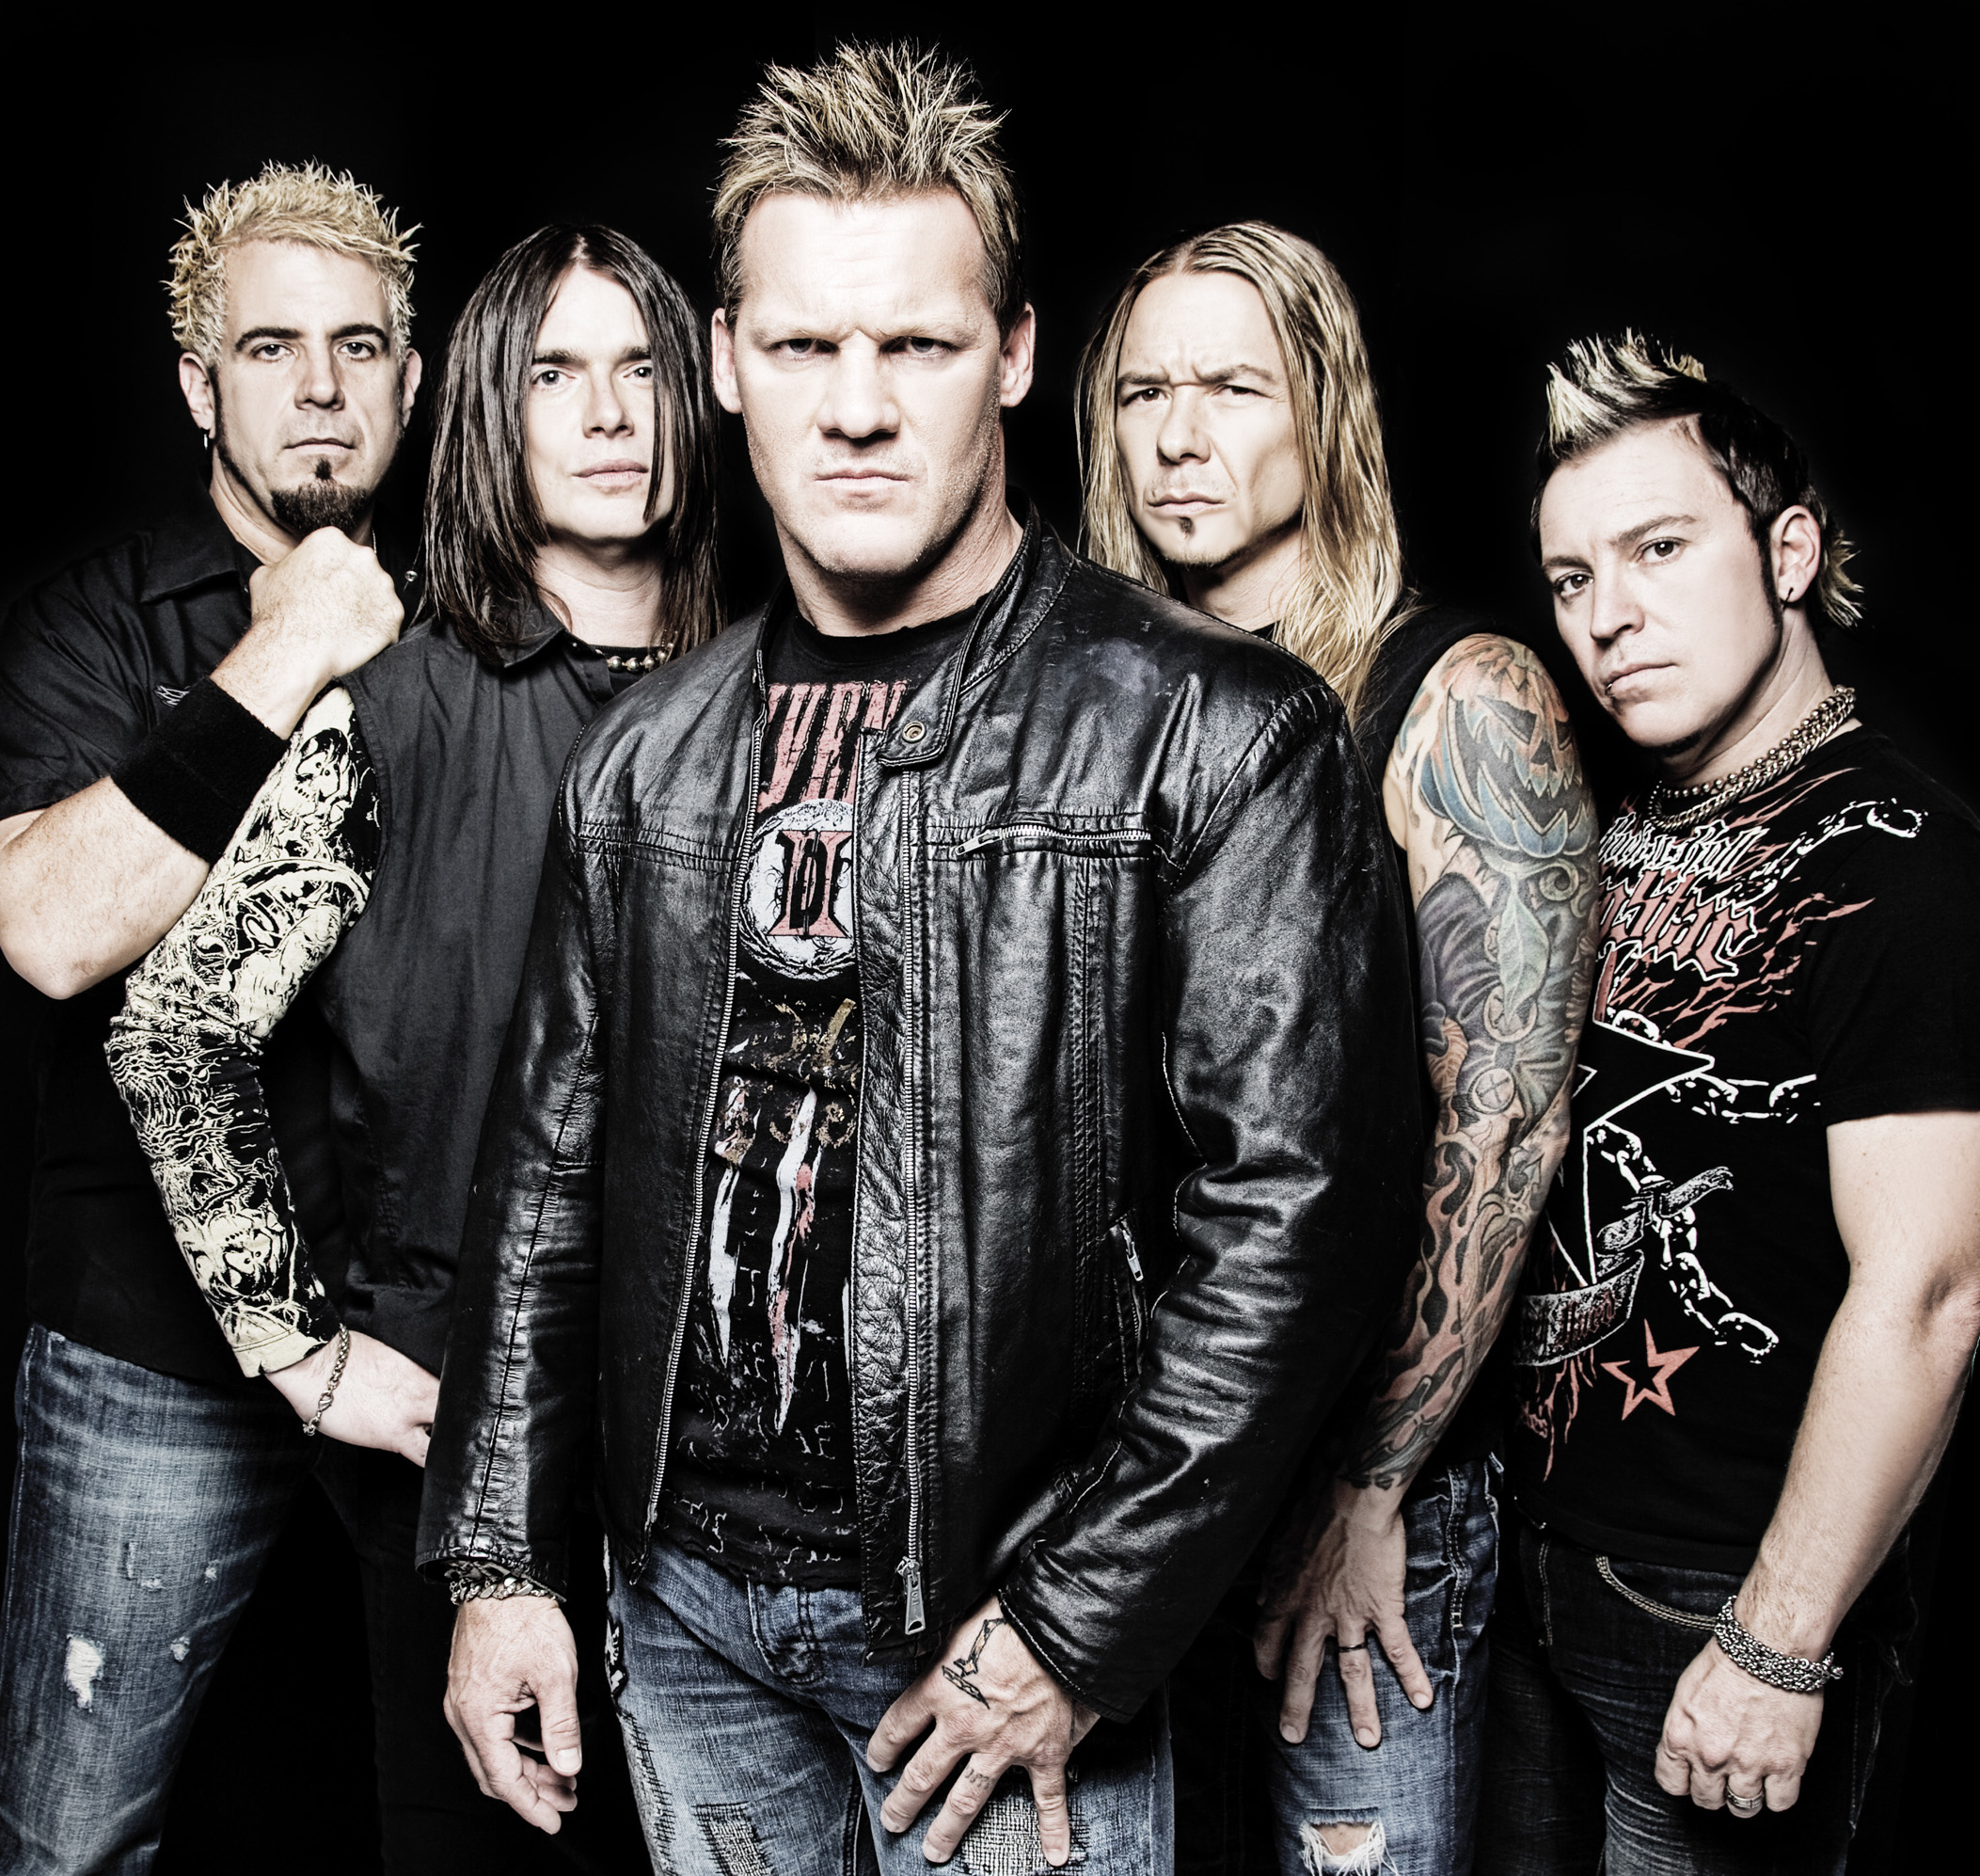 From summerslam to the uproar festival jericho rocks the for House music bands